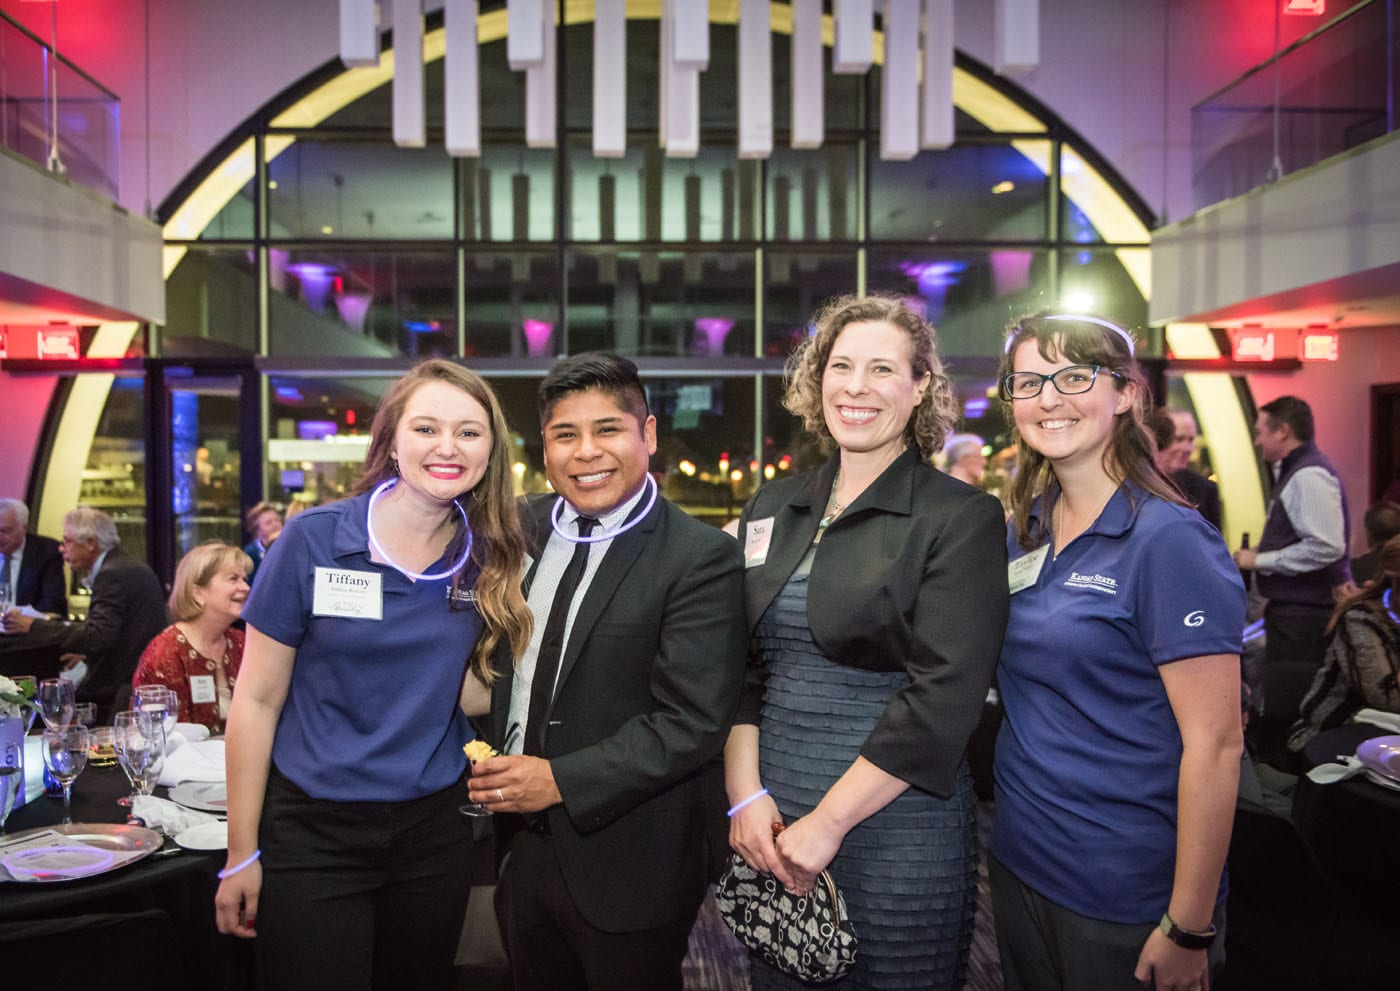 Four smiling gala attendees, including two students wearing purple student ambassador polo shirts, pose in the middle of the event space that glows with a soft purple light.